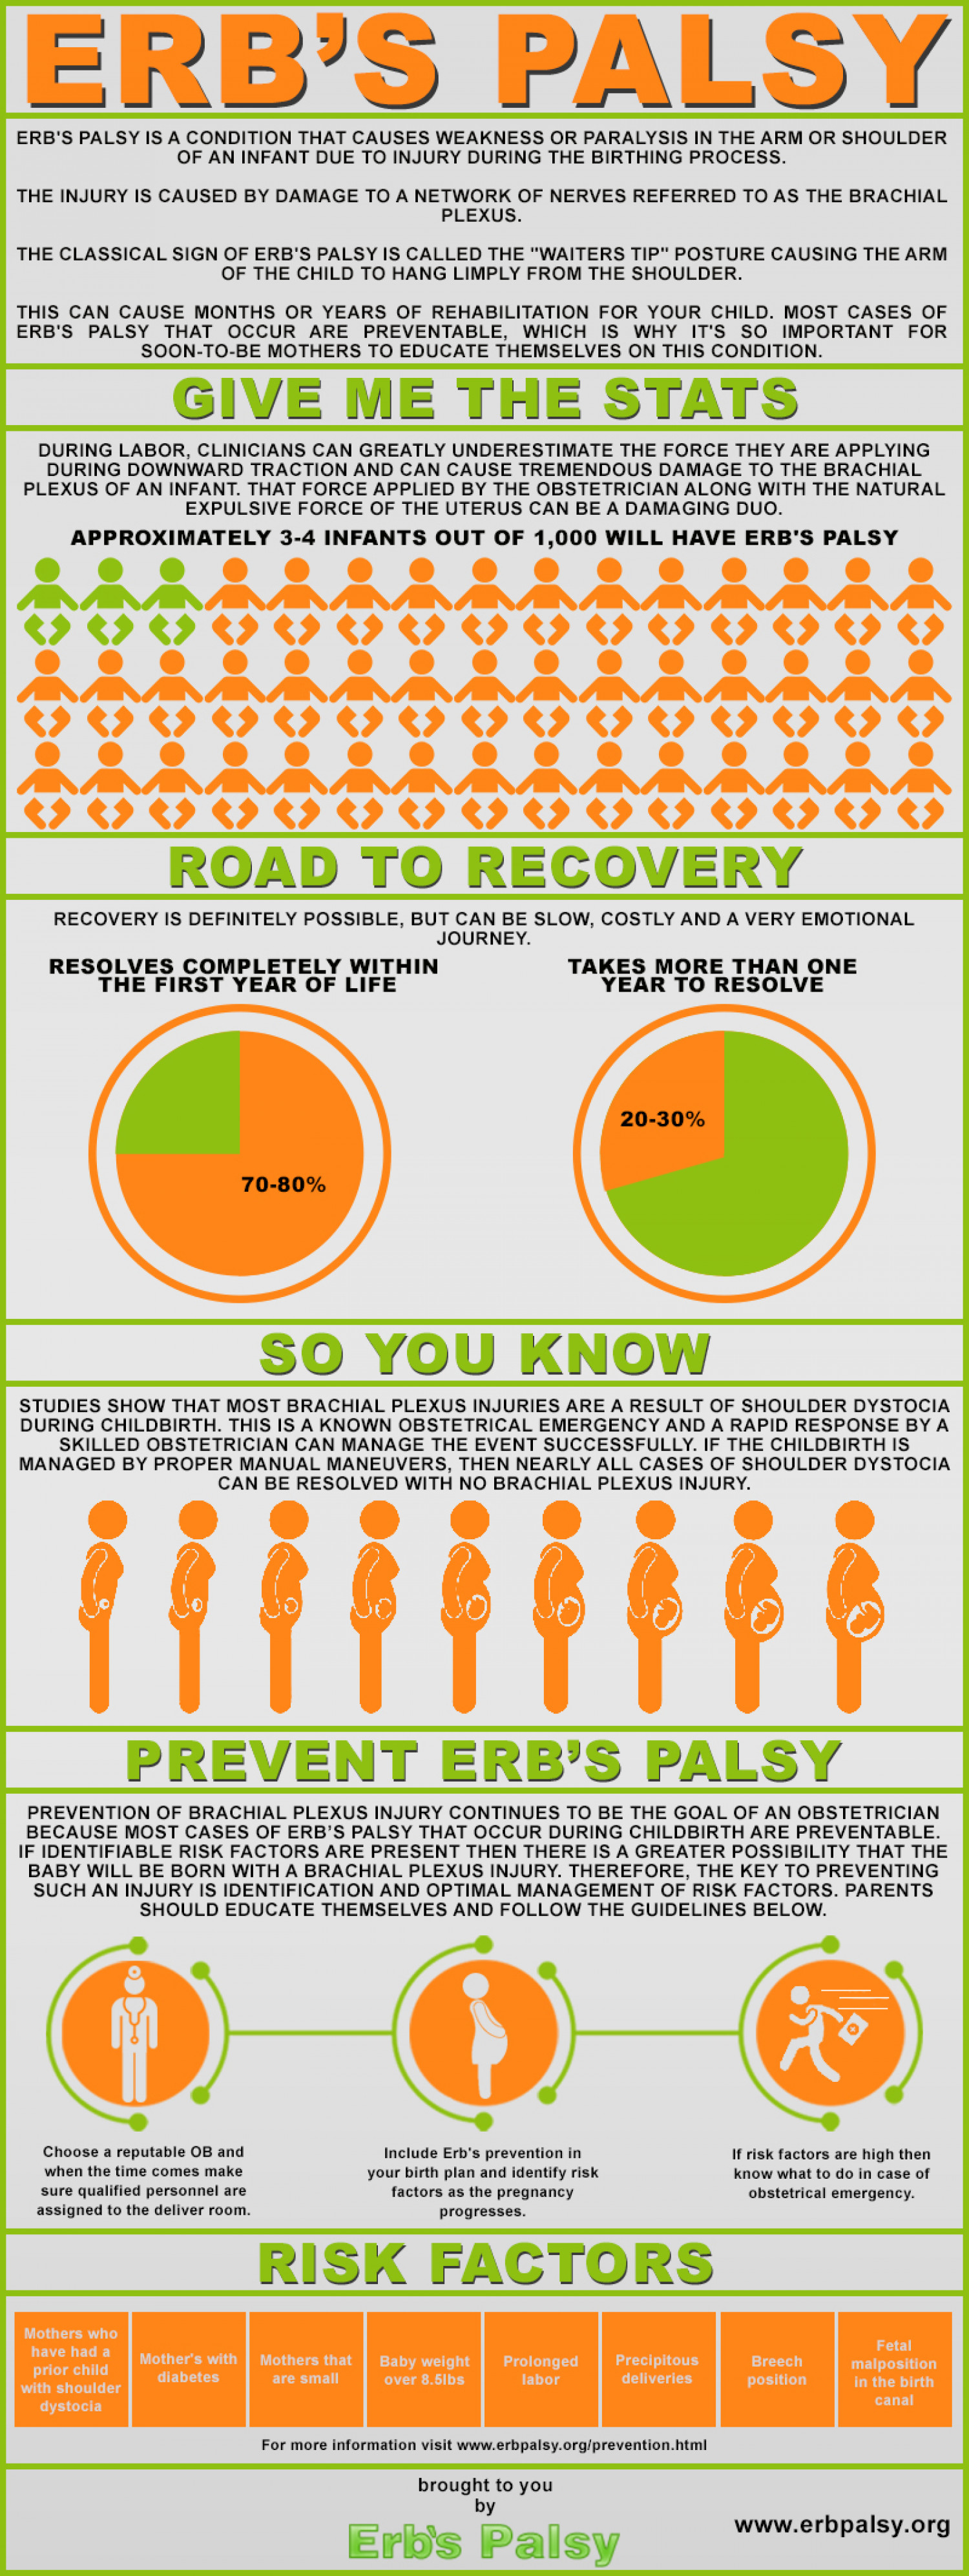 Erb's Palsy - An Overview and Parents Guide to Prevention Infographic